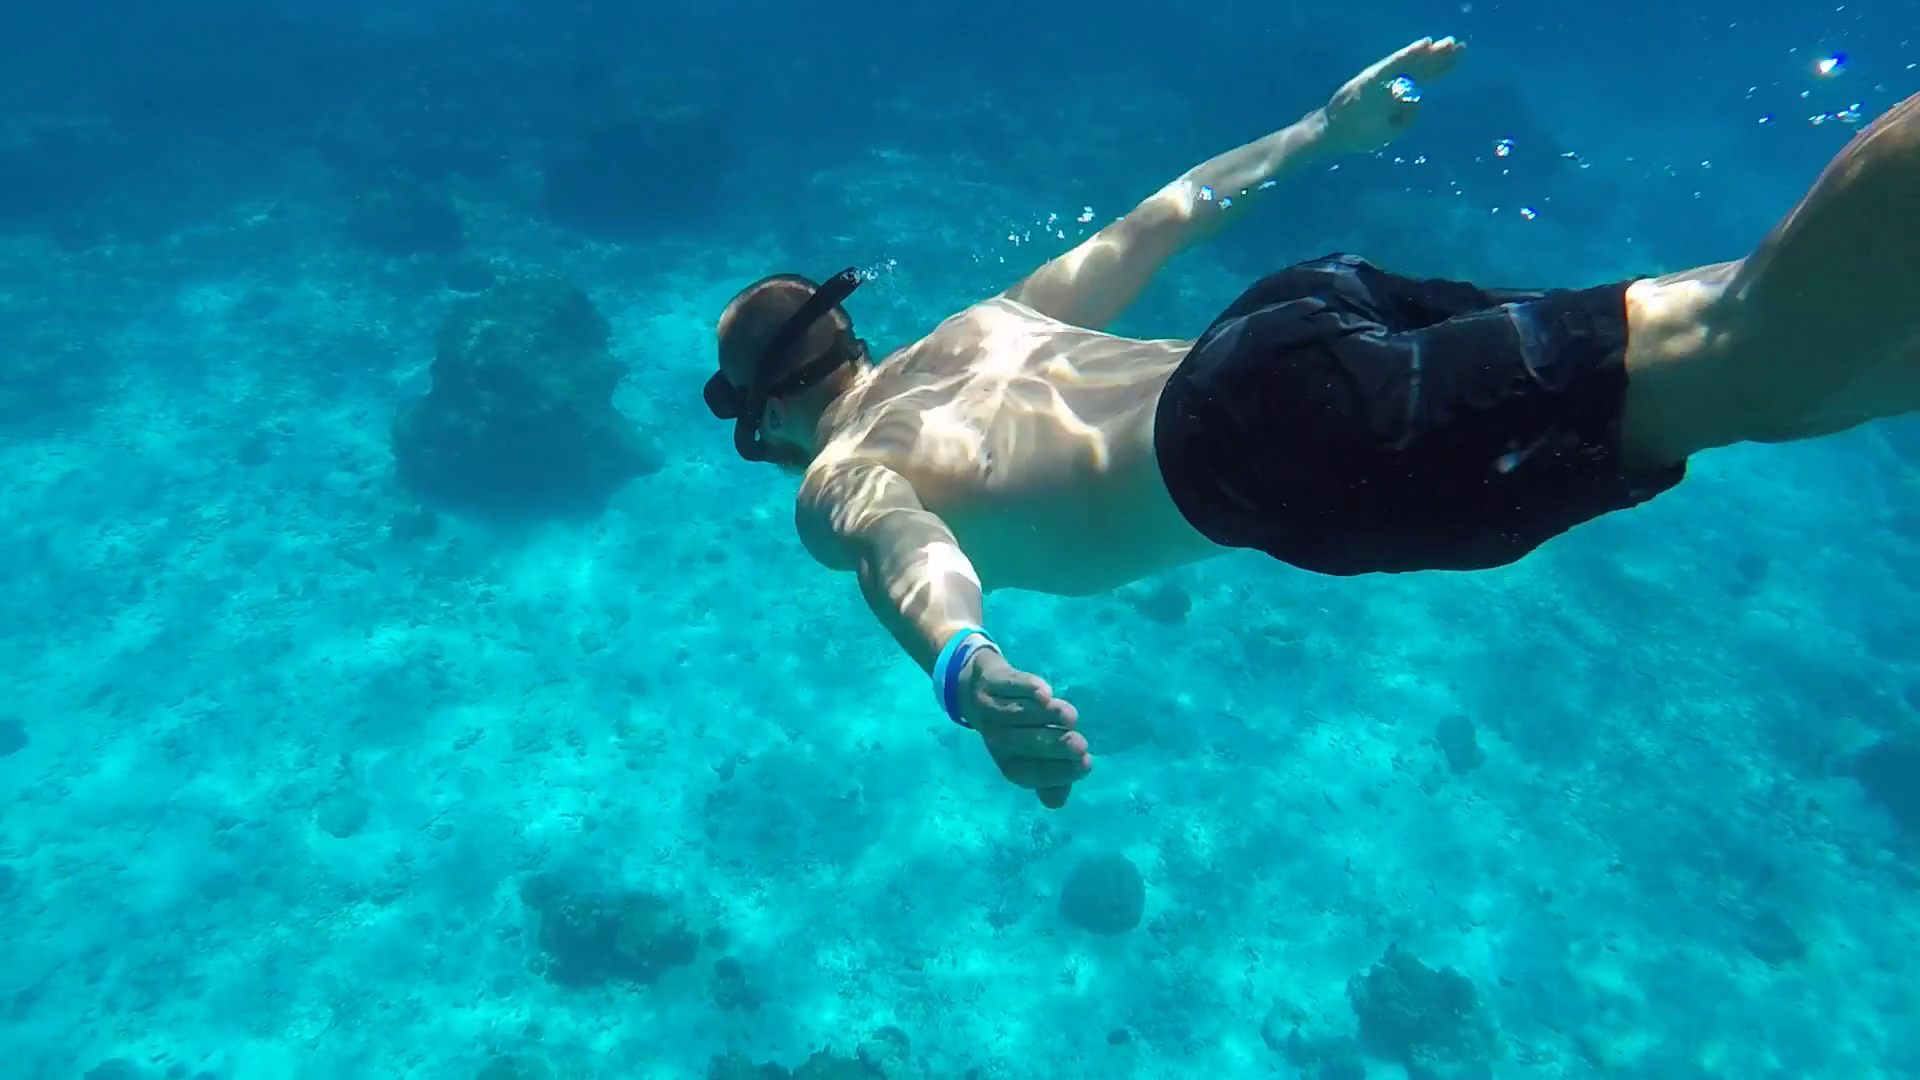 videoblocks-young-man-diving-deep-in-clear-blue-water-snorkeling-guy-hd-underwater-gopro-slow-motion-andaman-thailand_seseqhqb5e_thumbnail-full11